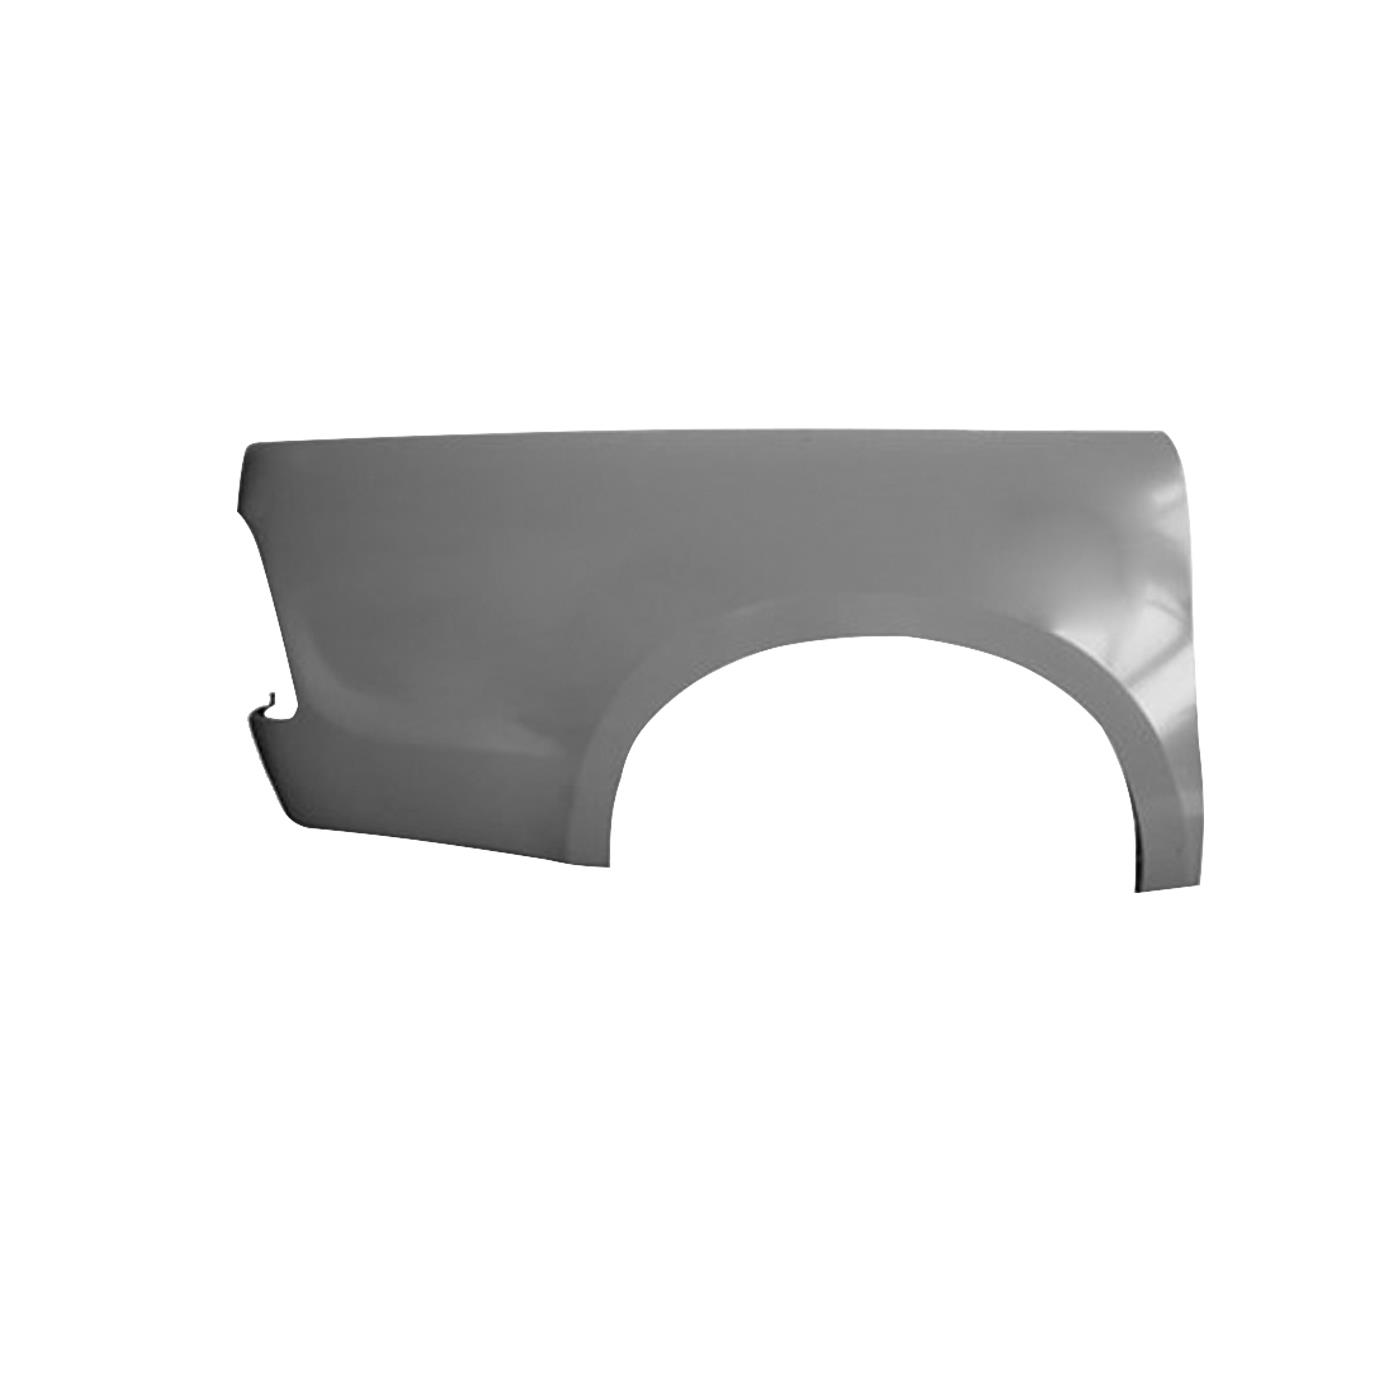 LATERAL TRAS HILUX 05/ DUPLA LD (ORIGINAL)